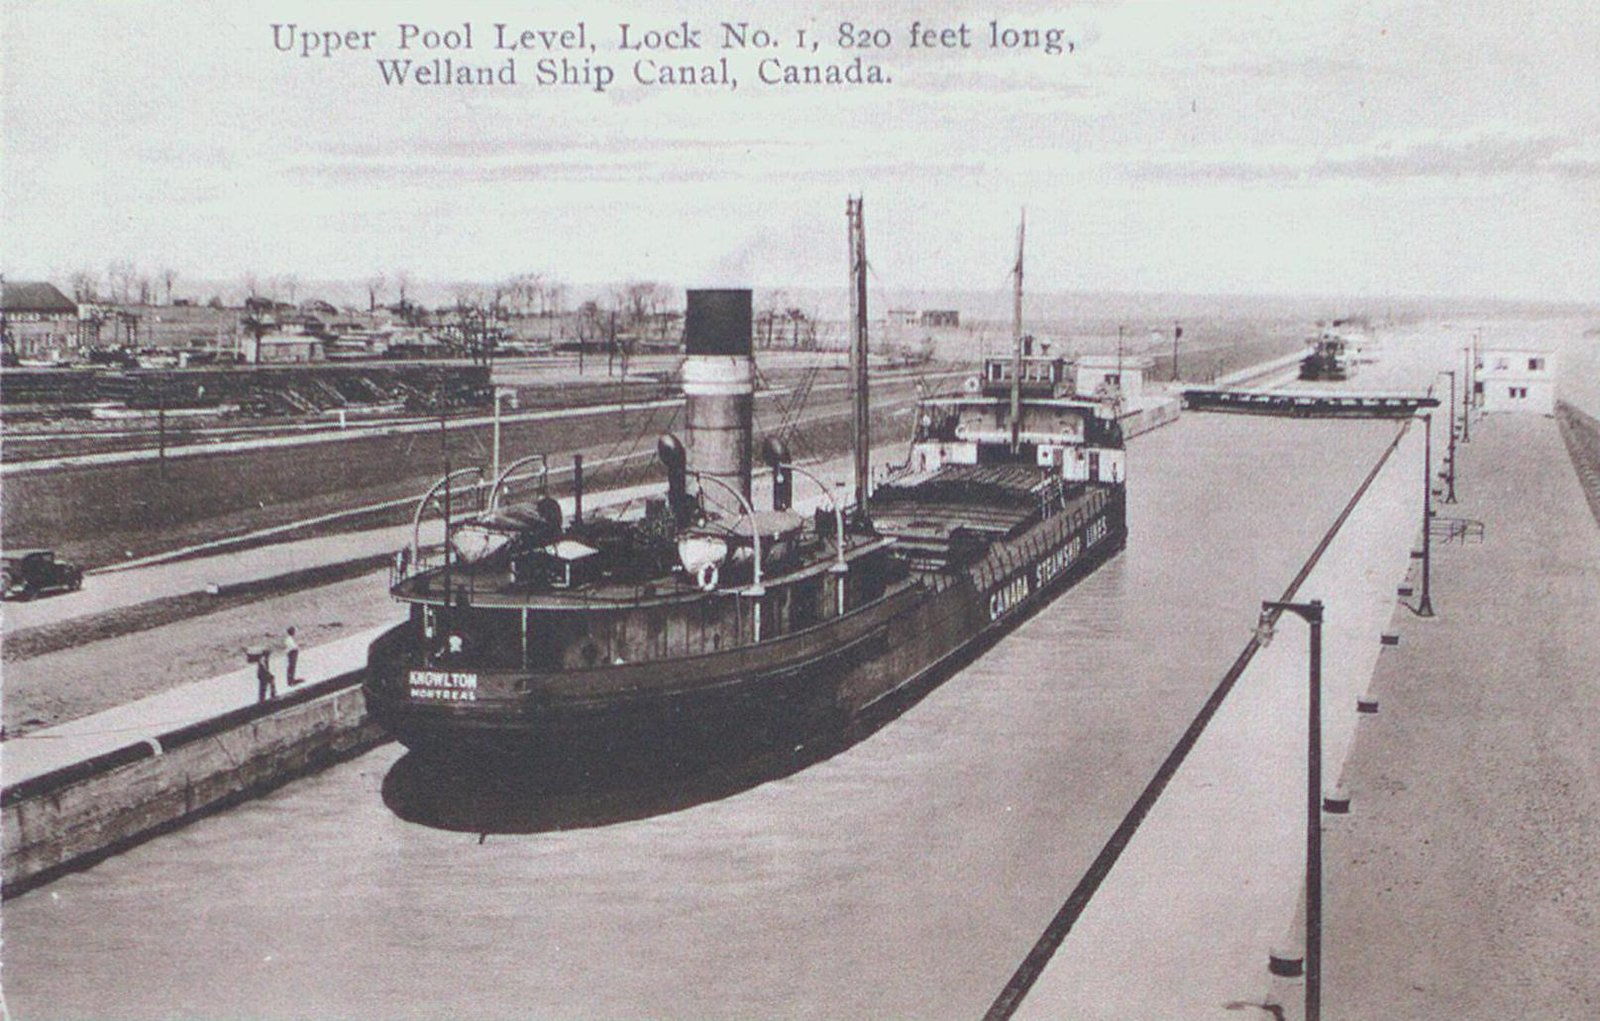 Upper Pool at Lock One on the Welland Ship Canal